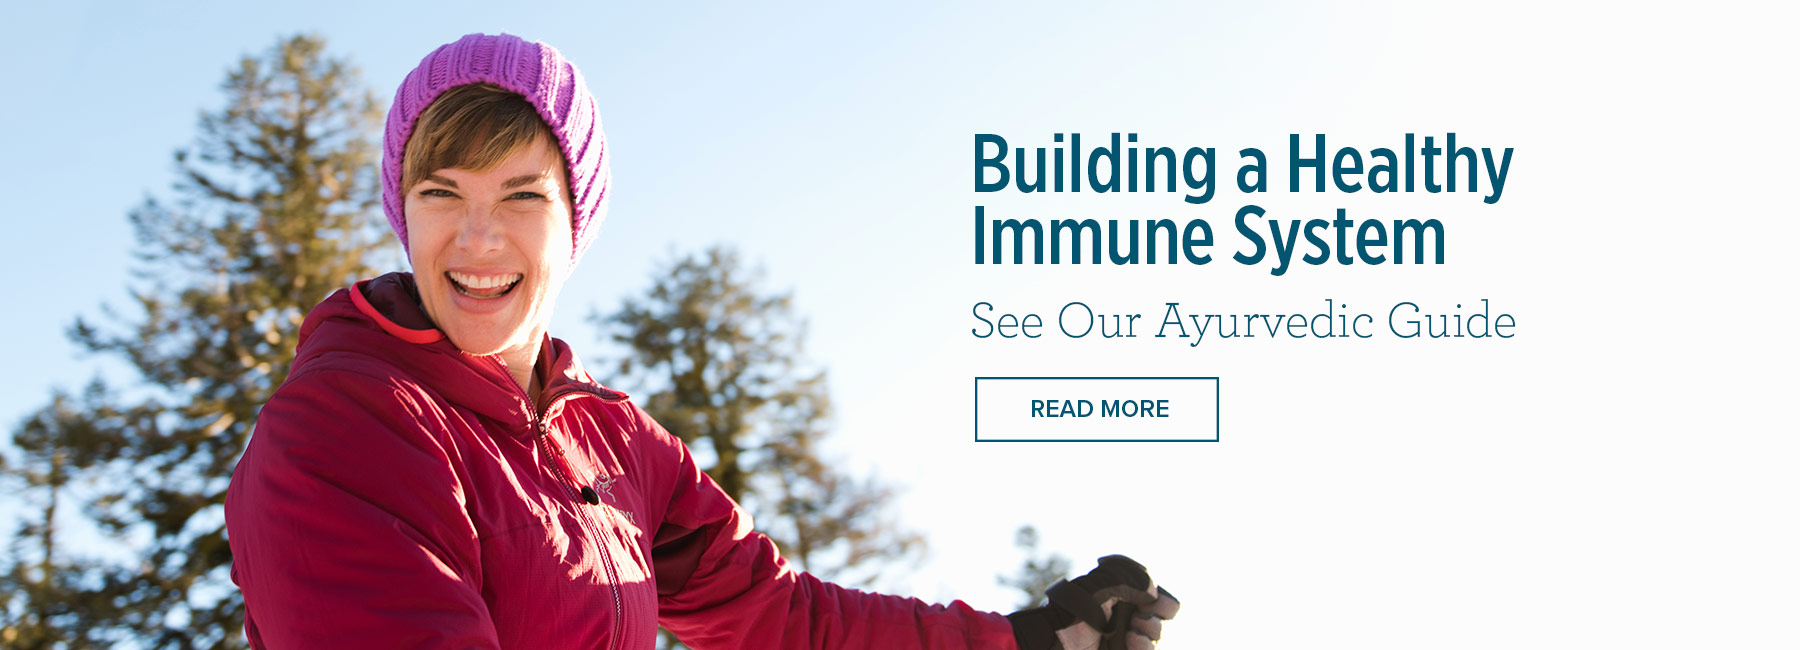 Building a Healthy Immune System: An Ayurvedic Guide to Strengthening Ojas